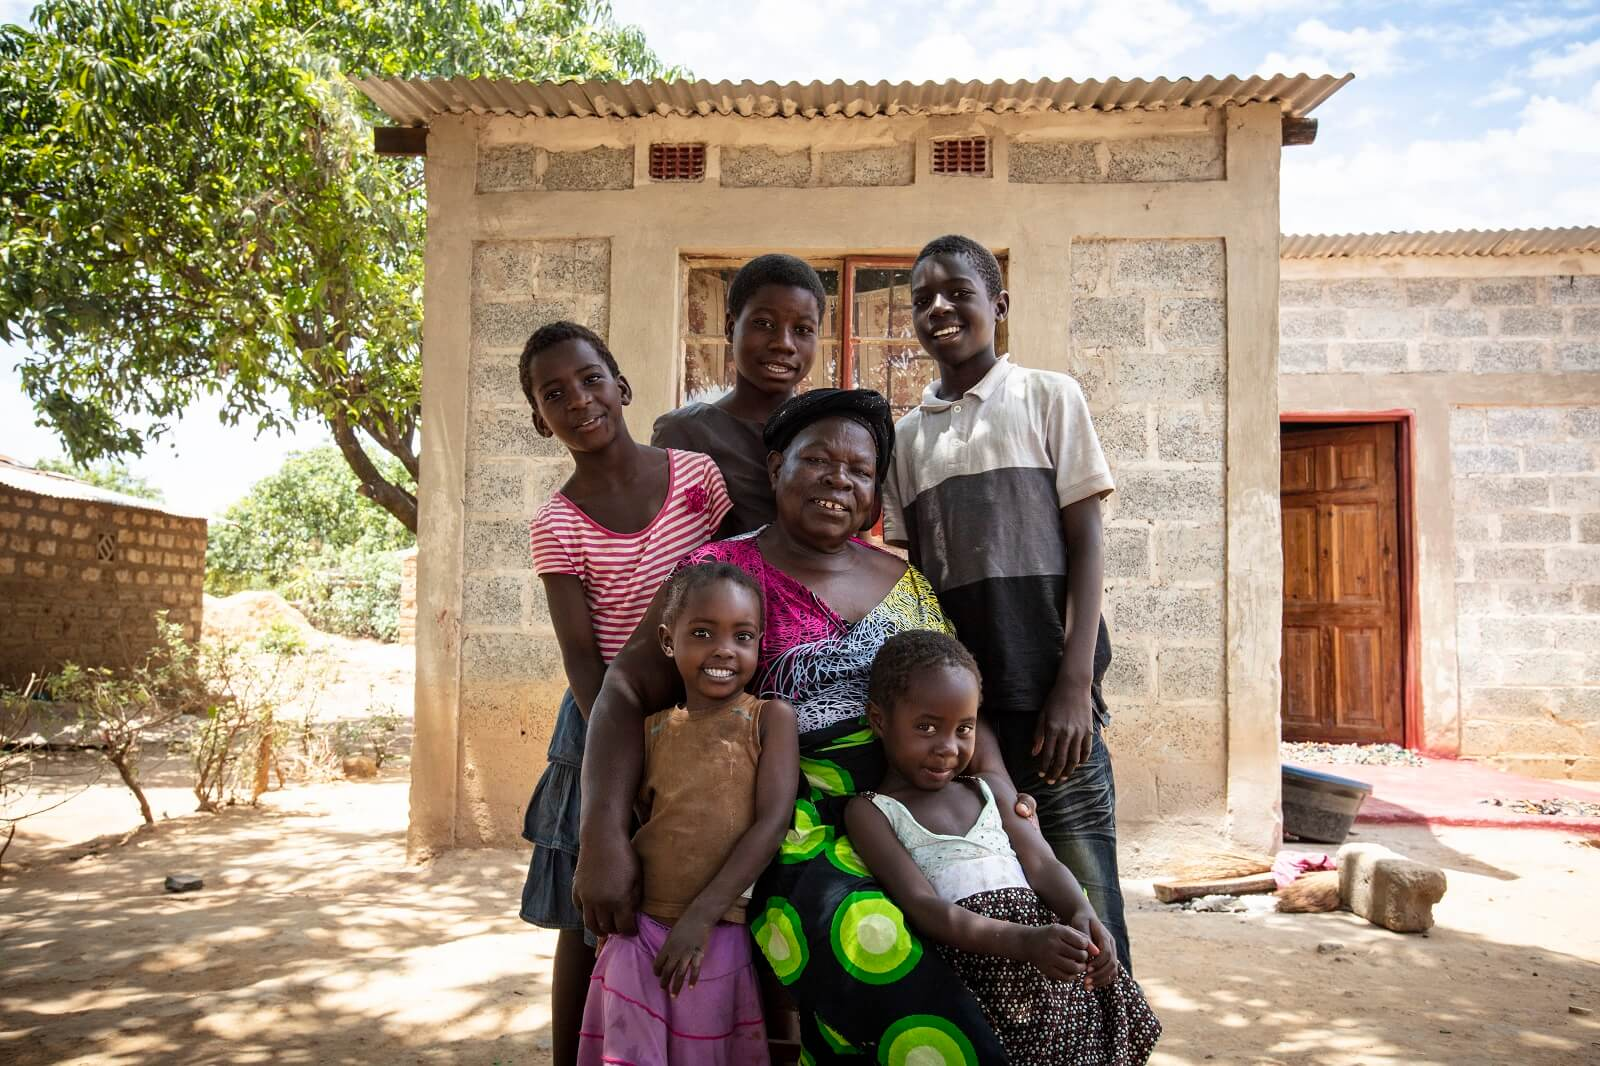 Habitat for Humanity - An example of their disaster proofed homes in Southern Africa